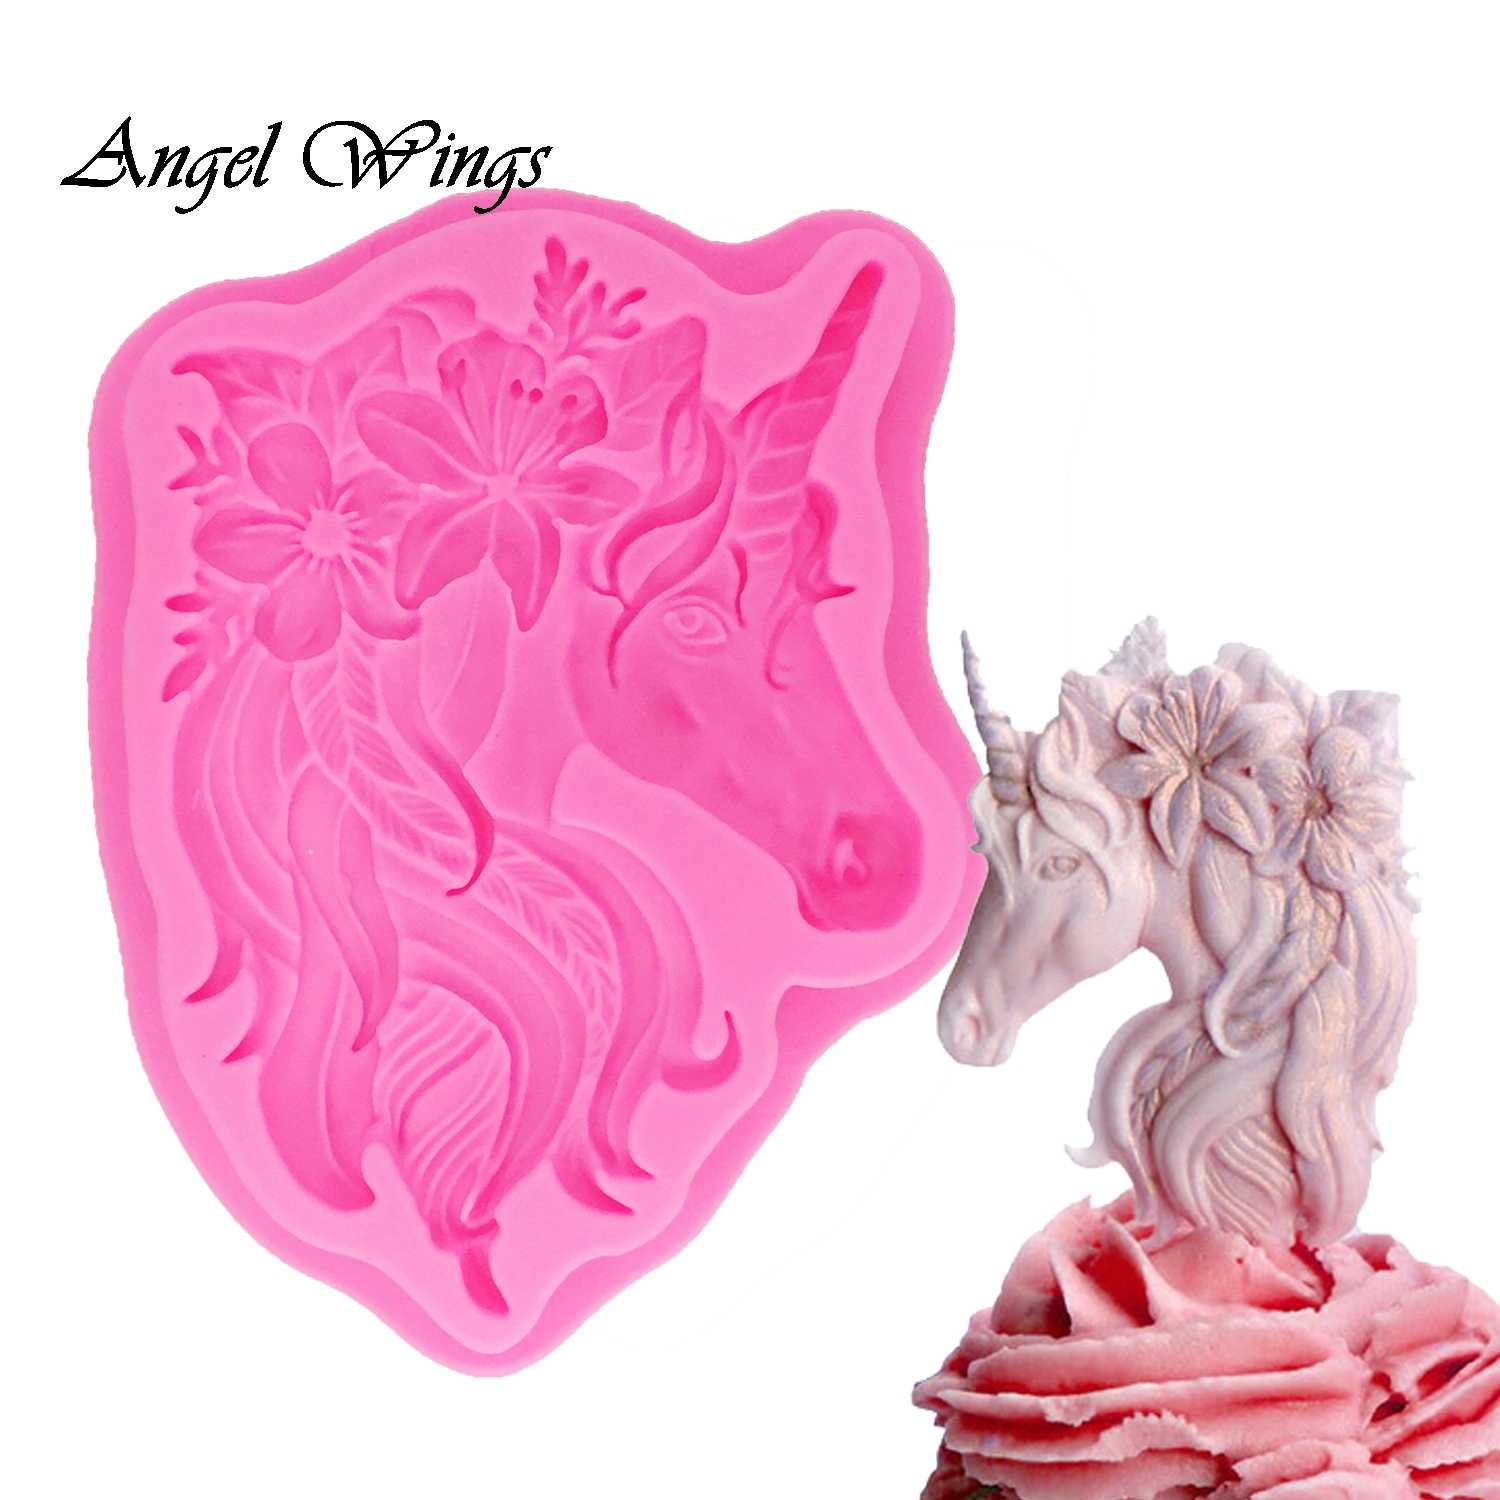 3D Unicorn Silicone Mold Cupcake Topper Decoration Fondant DIY Party Cake Decorating Tool Candy Gumpaste dessert tools F1326